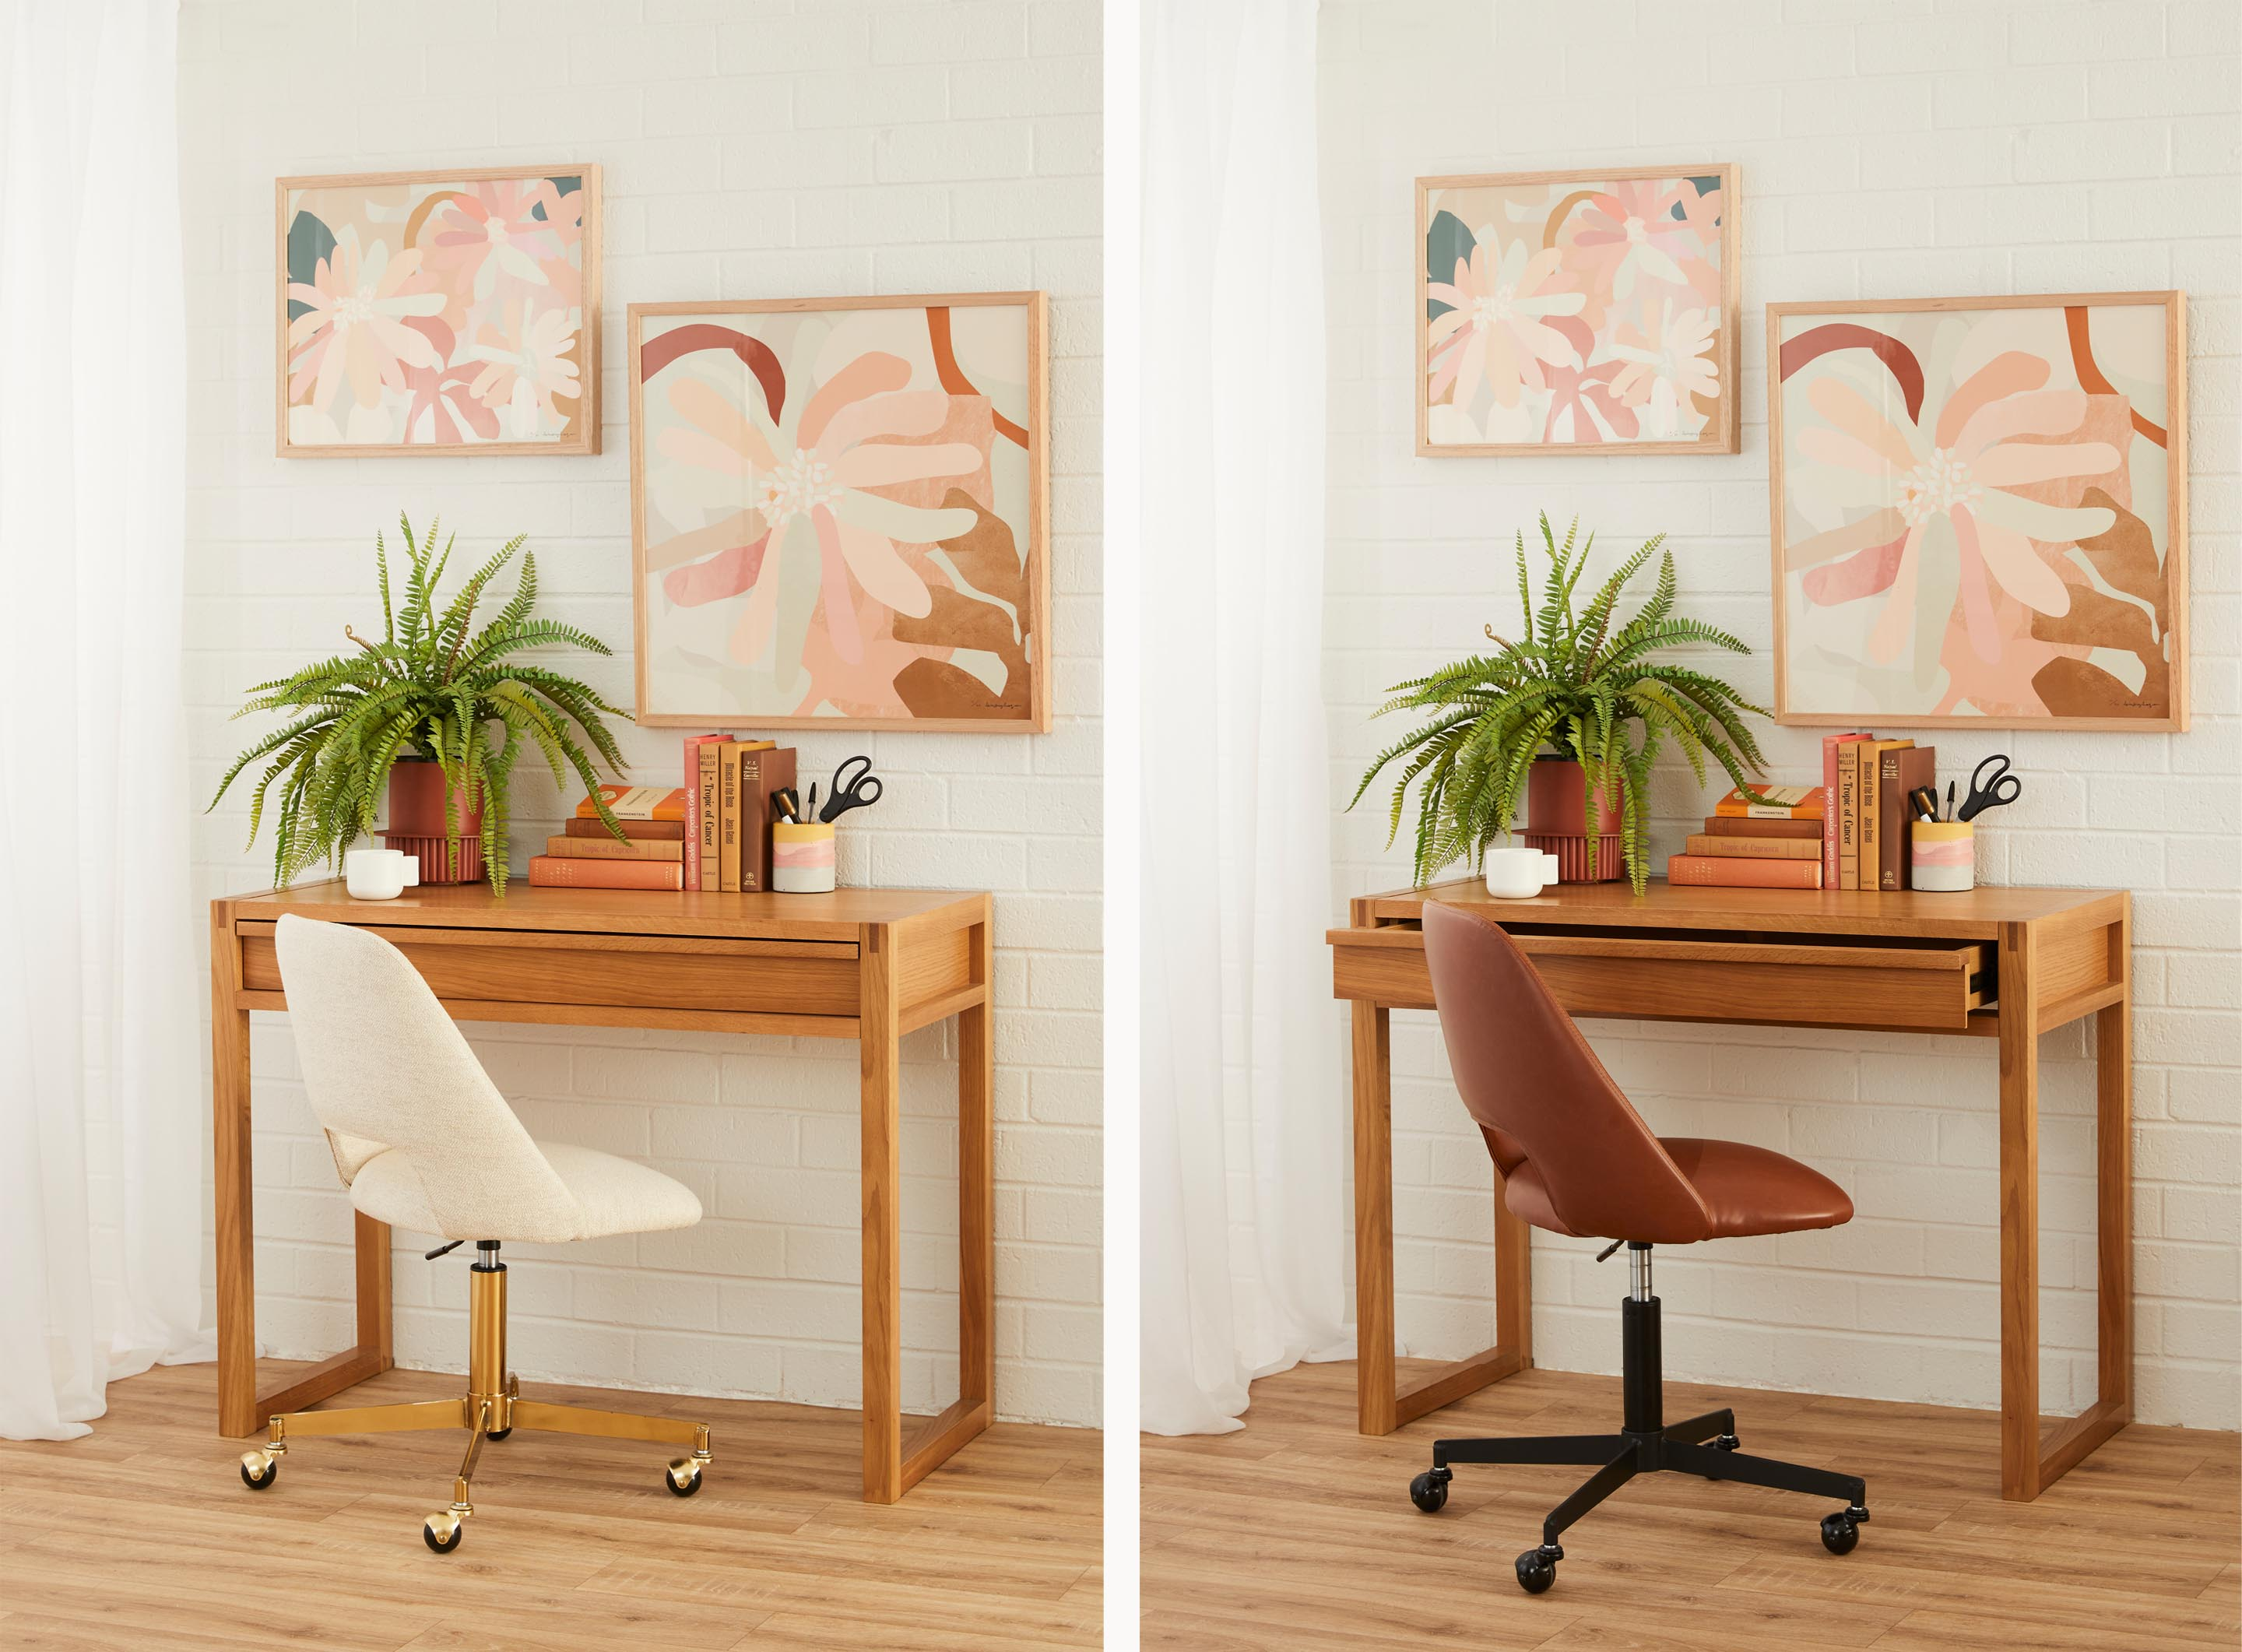 Shop our range of home office chairs and desks in Sydney, Melbourne and online.